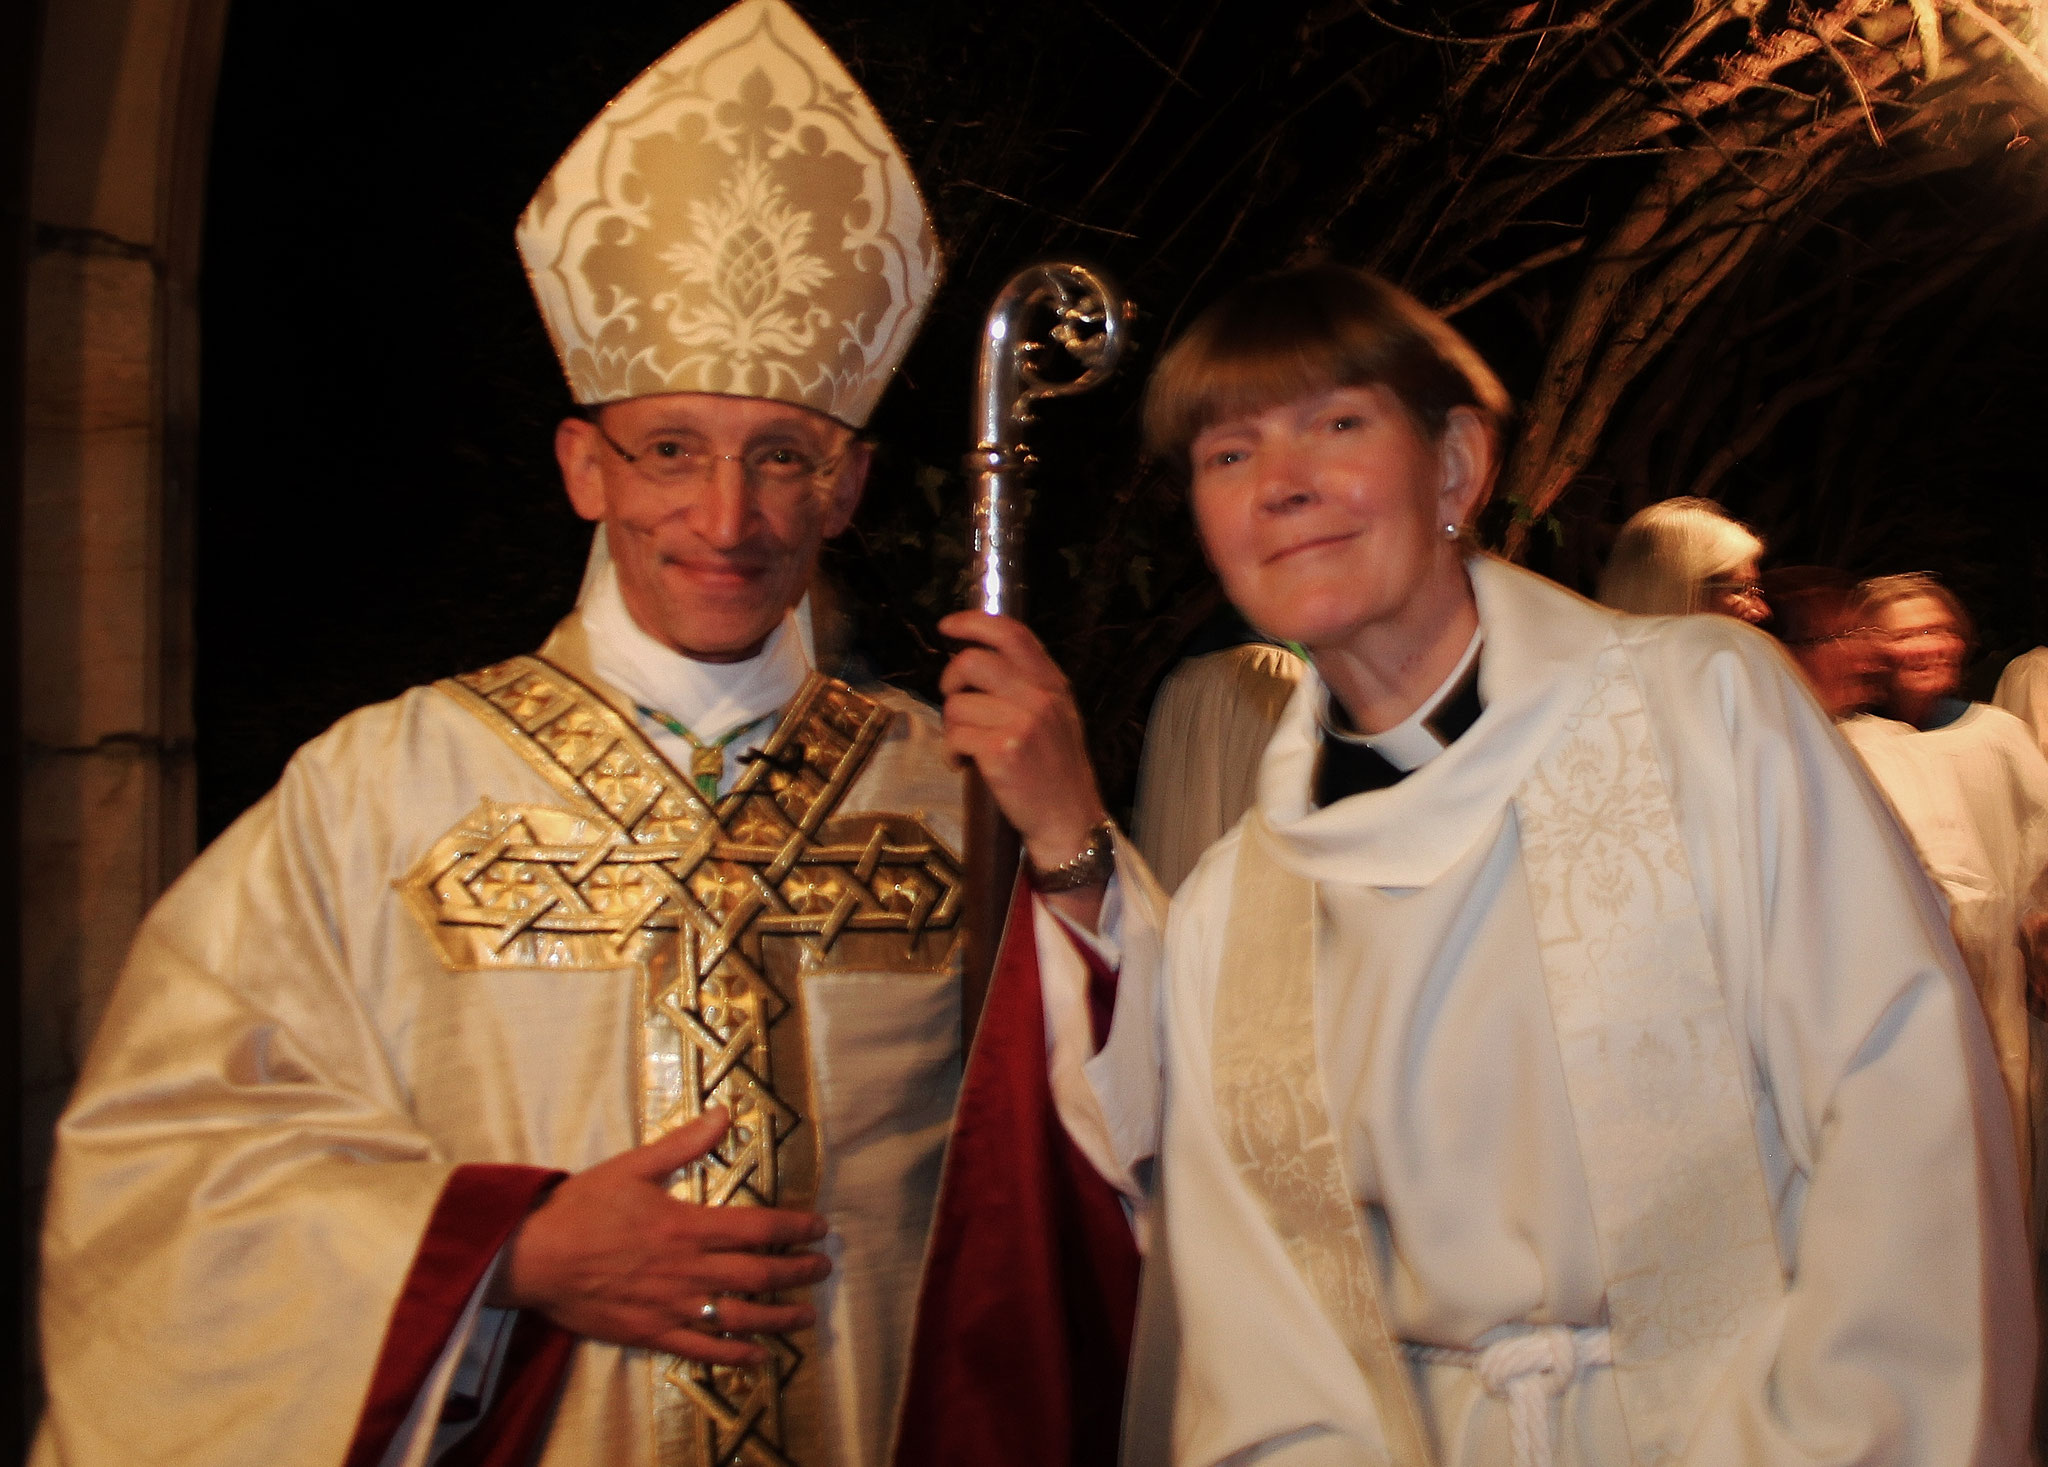 The Bishop with our new priest, Jules